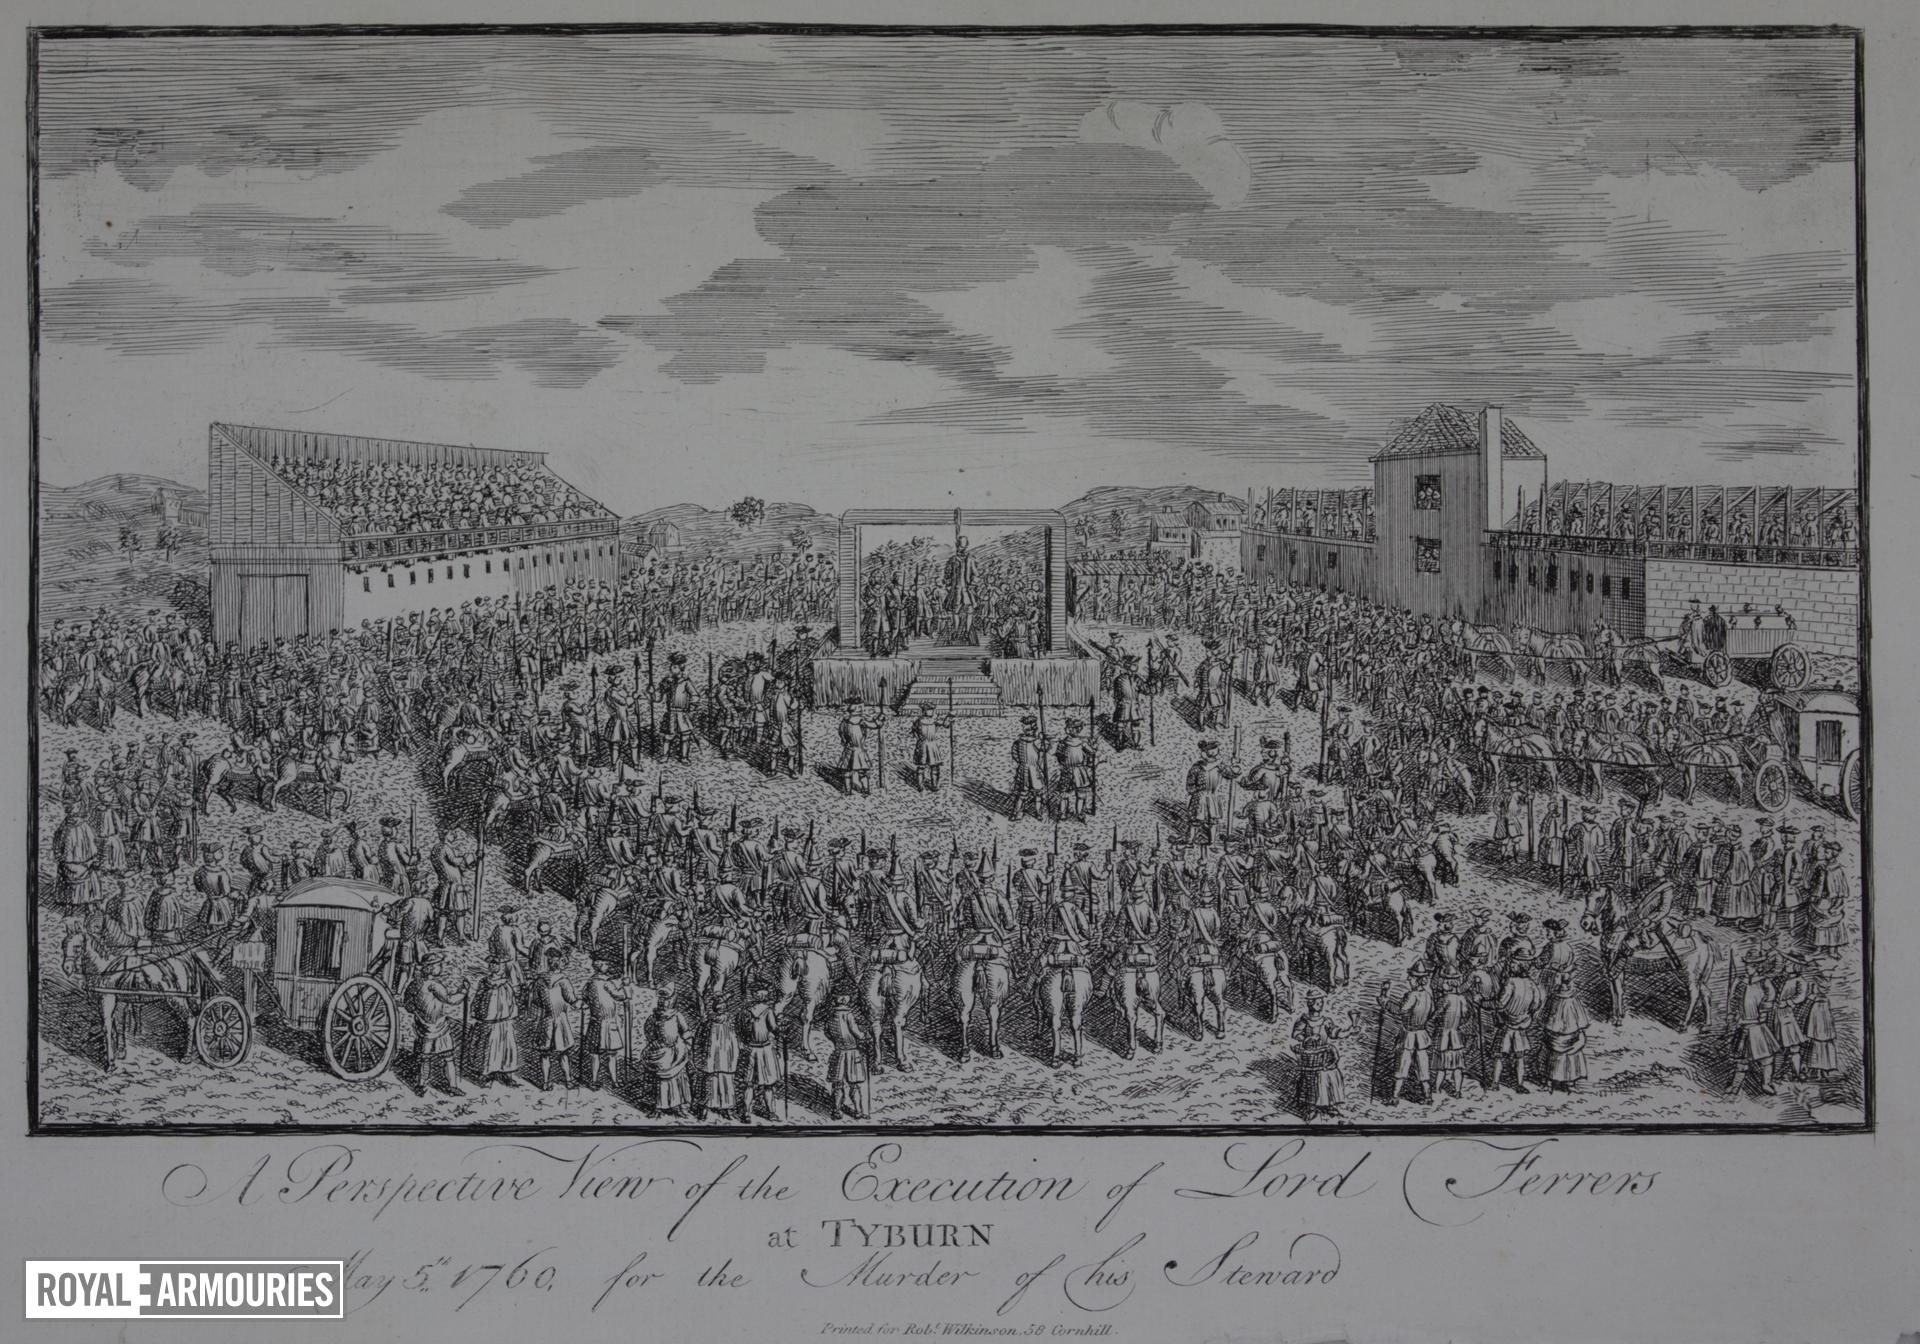 Execution of Lord Ferrers at Tyburn